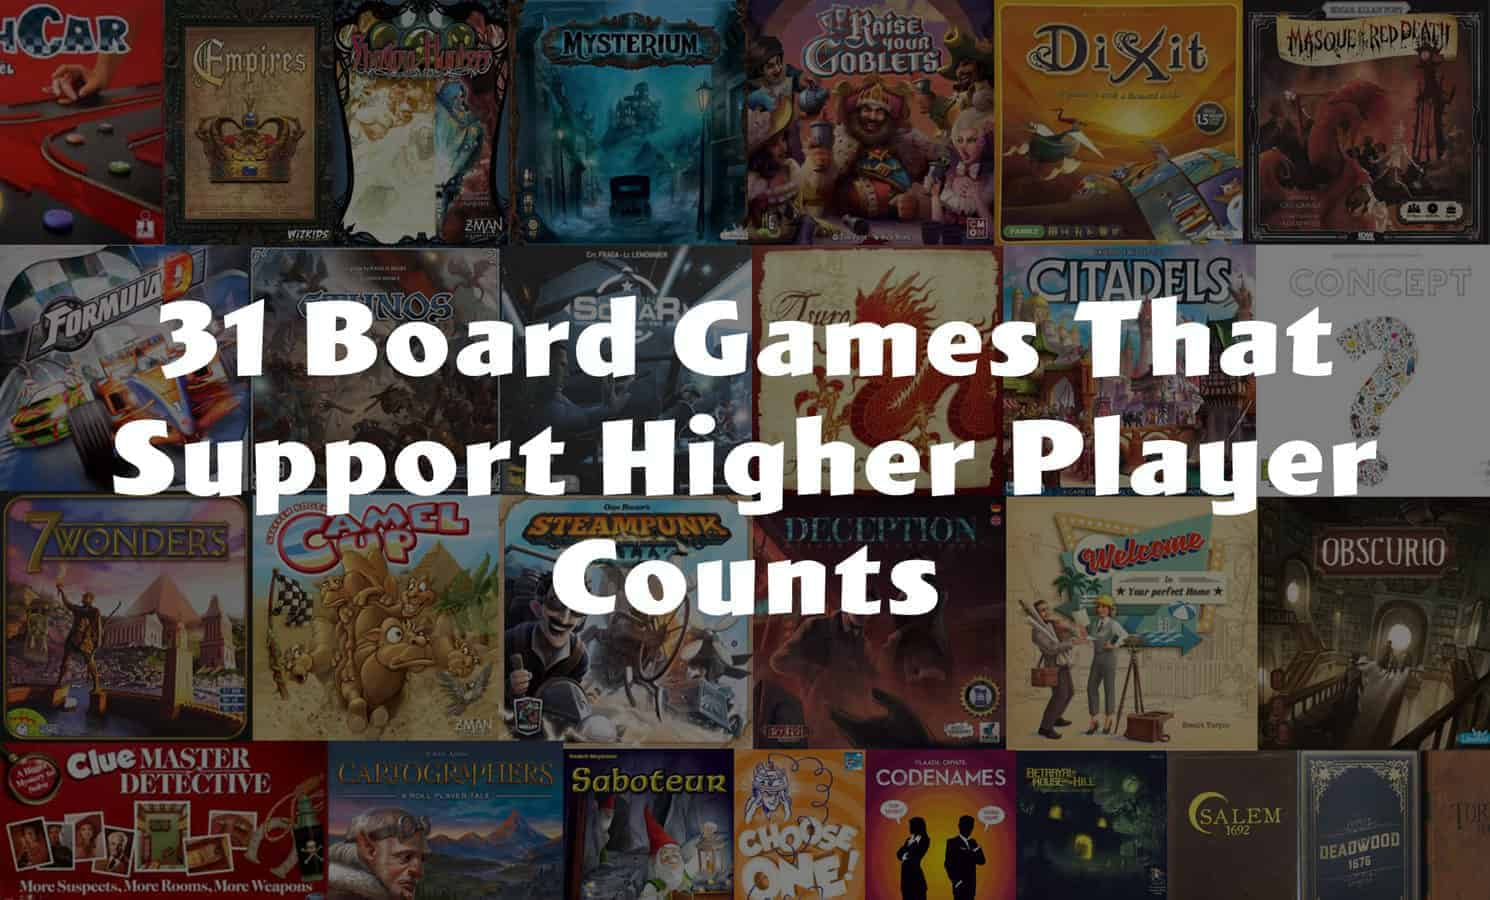 Board Games that Support Higher Player Counts